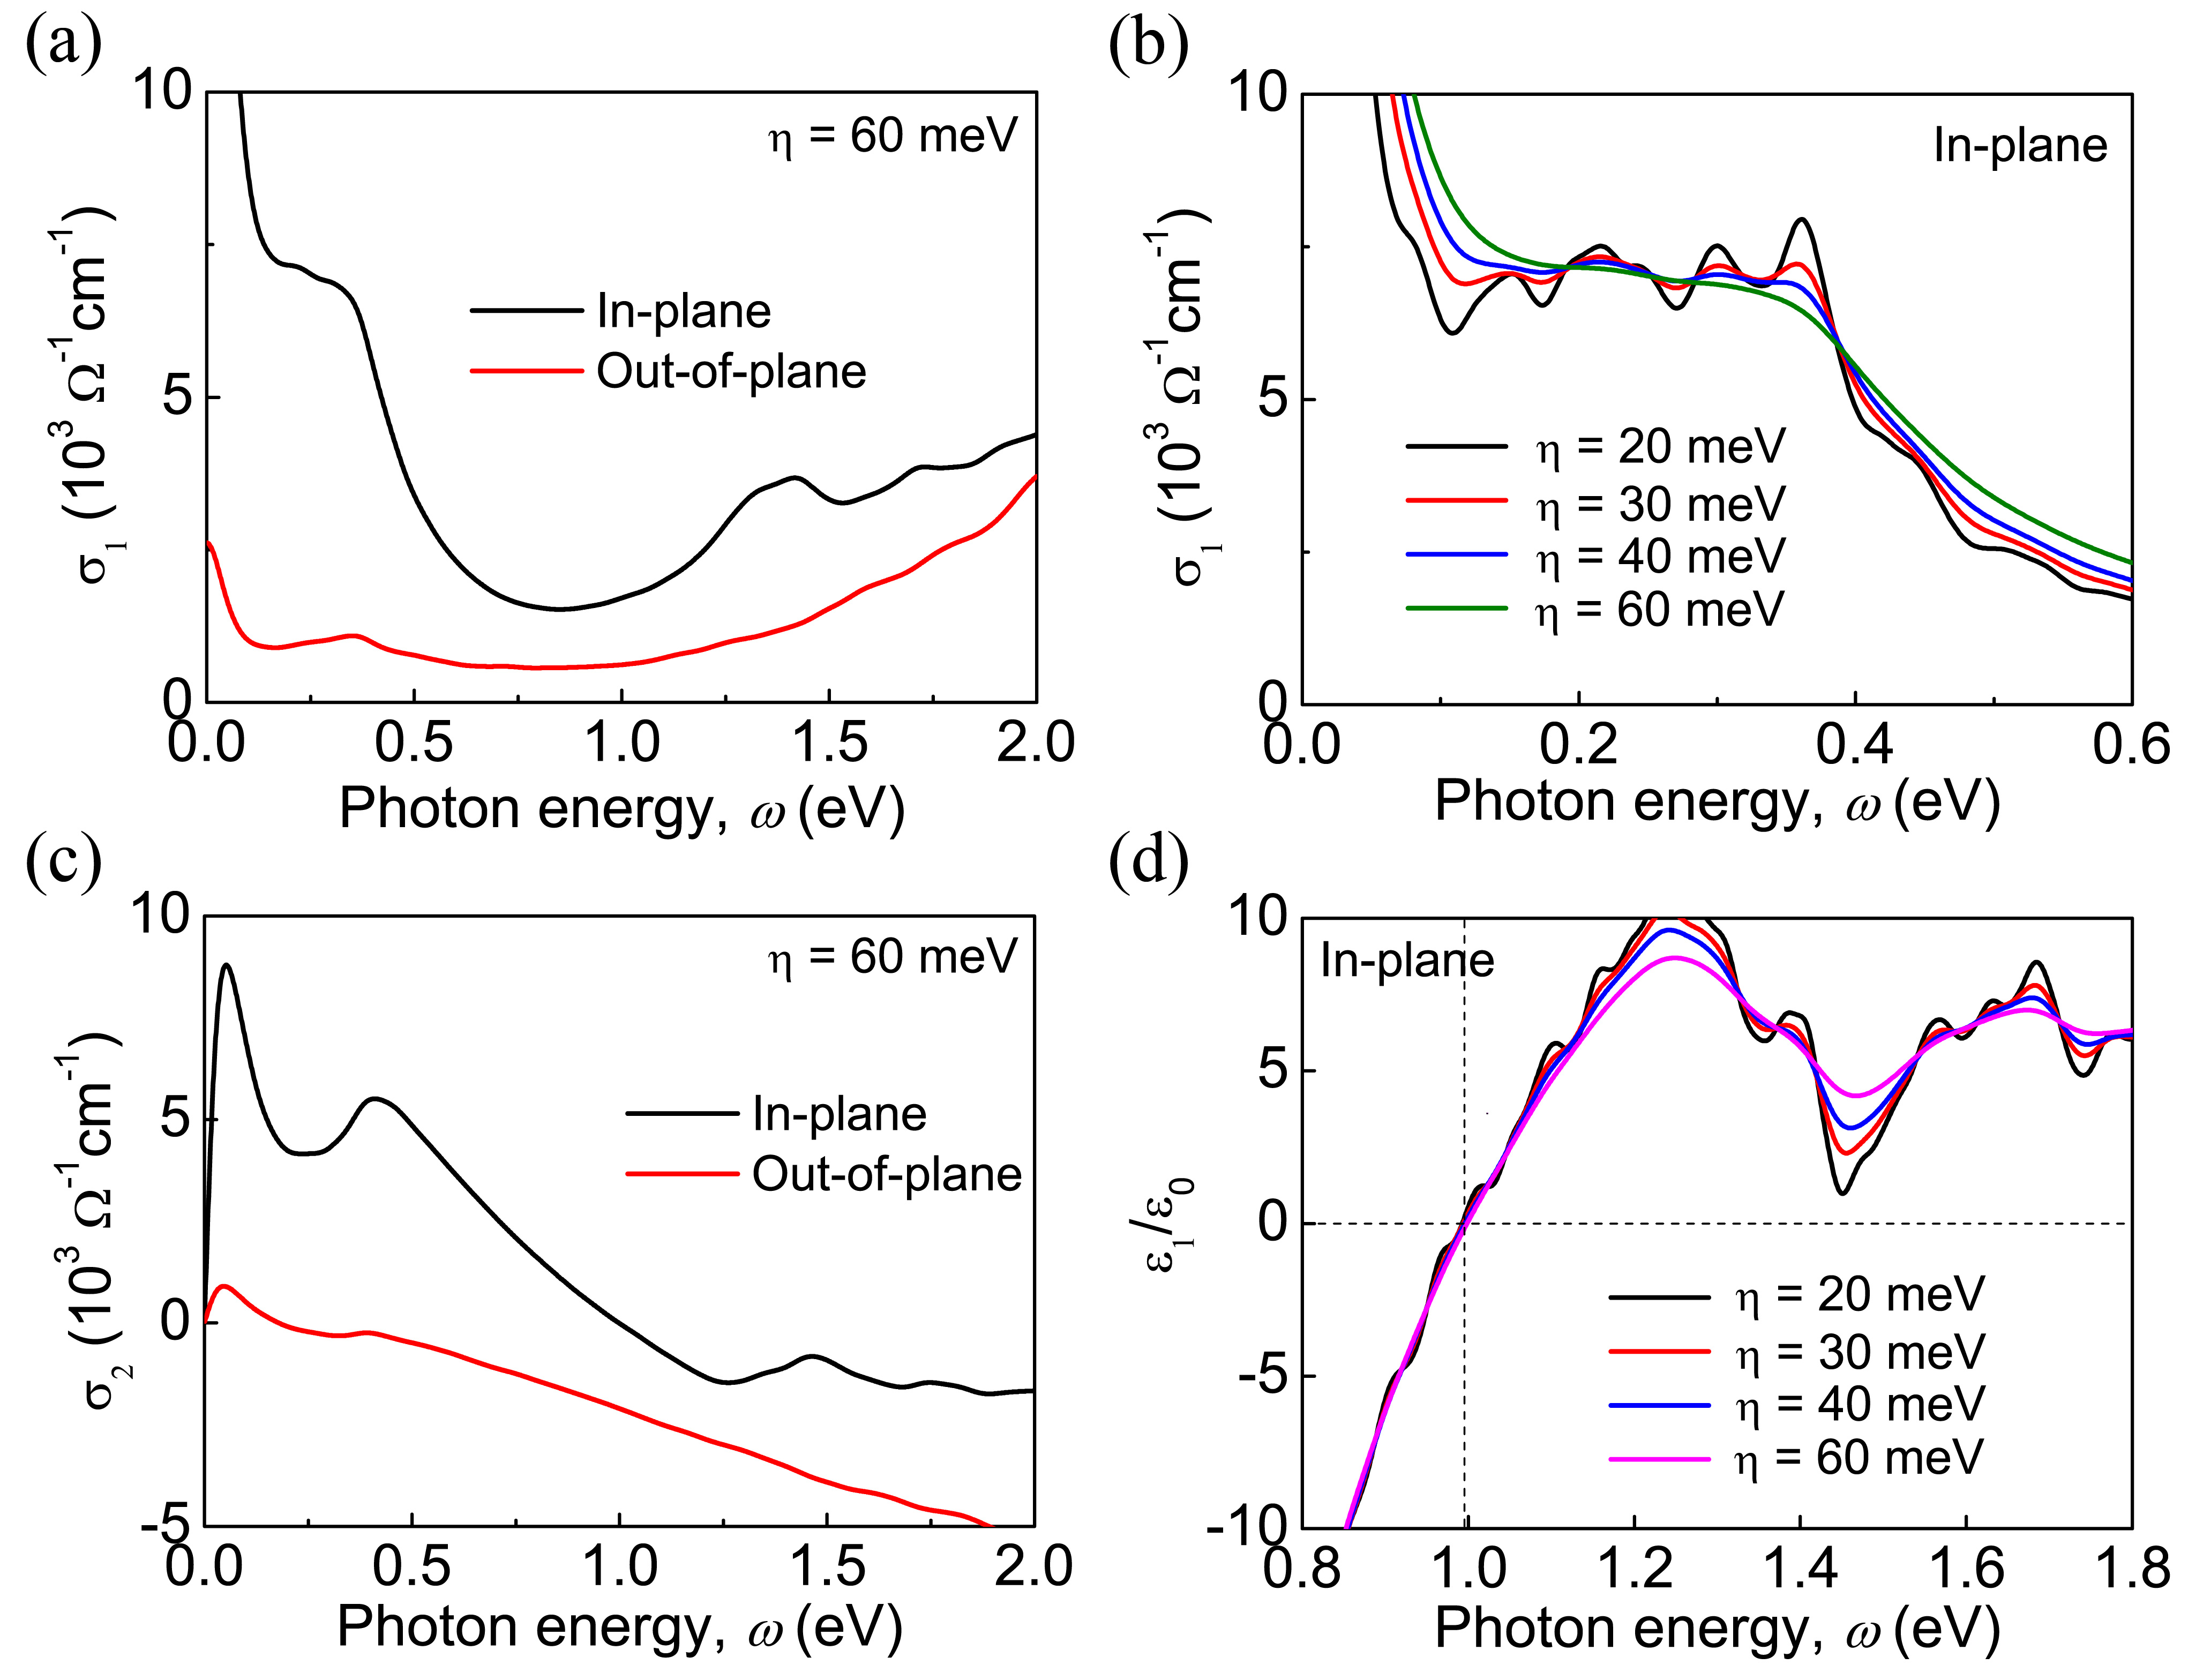 (a) Real part of the optical conductivity shown as a function of the photon energy with incidence along in-plane [100] and out-of-plane [001] crystallographic directions; (b) Real part of the in-plane optical conductivity calculated for different damping parameters